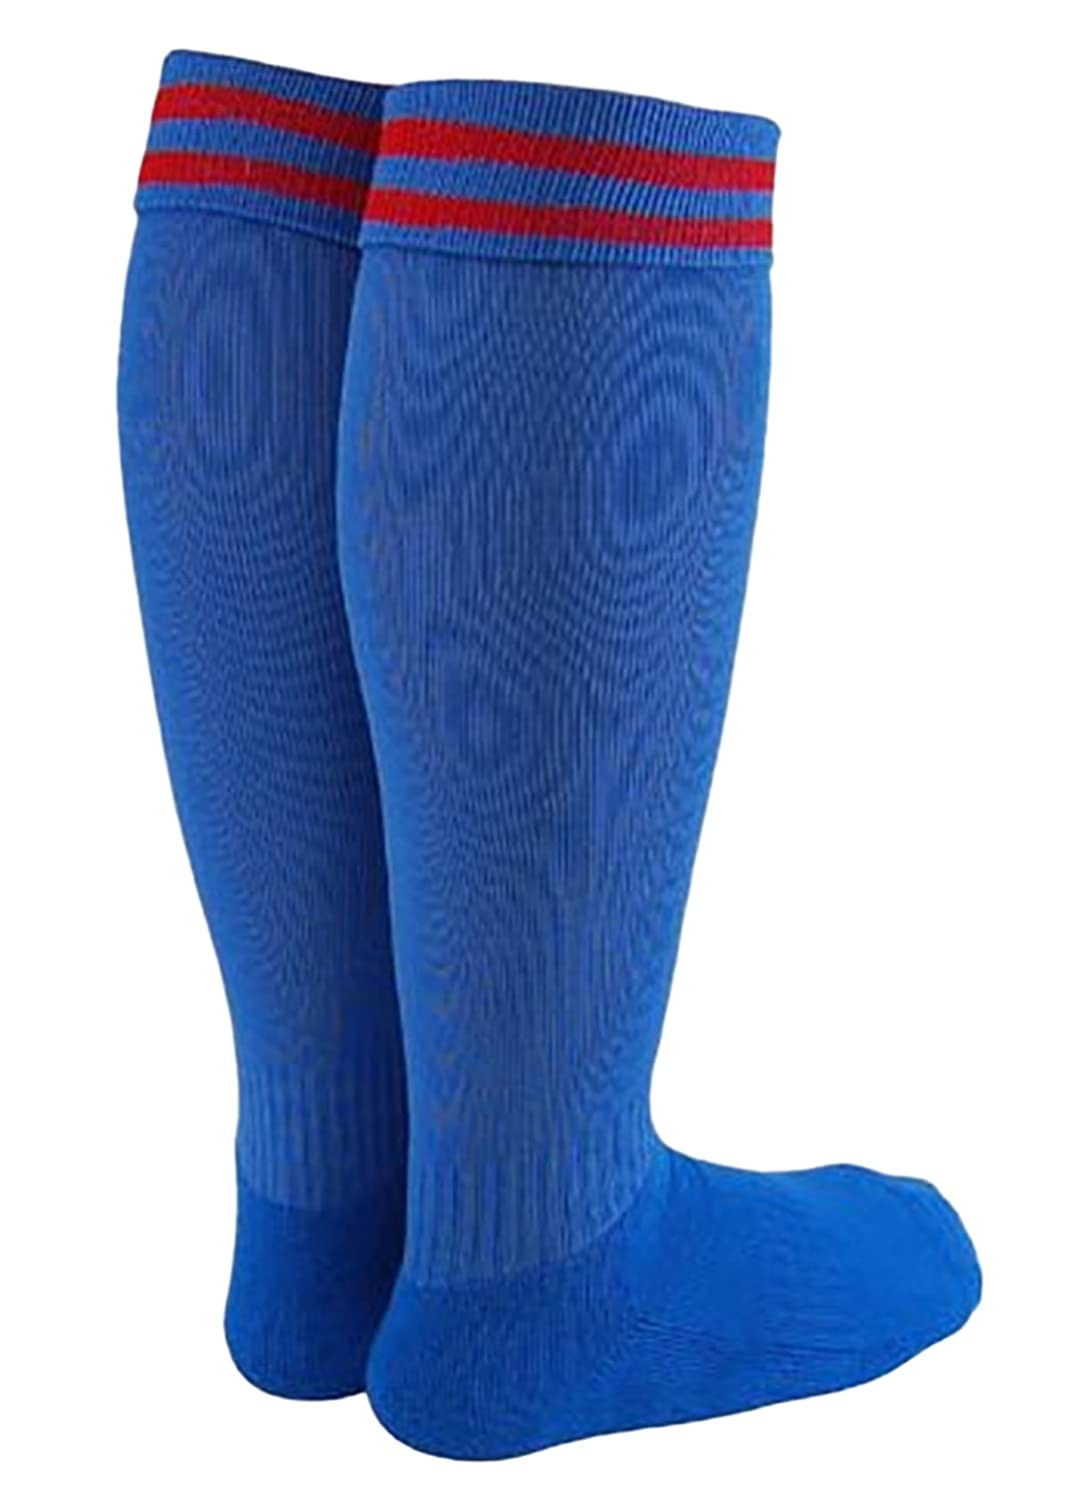 Lovely Annie Unisex Boy's 1 Pair Knee High Sports Socks for All Sports